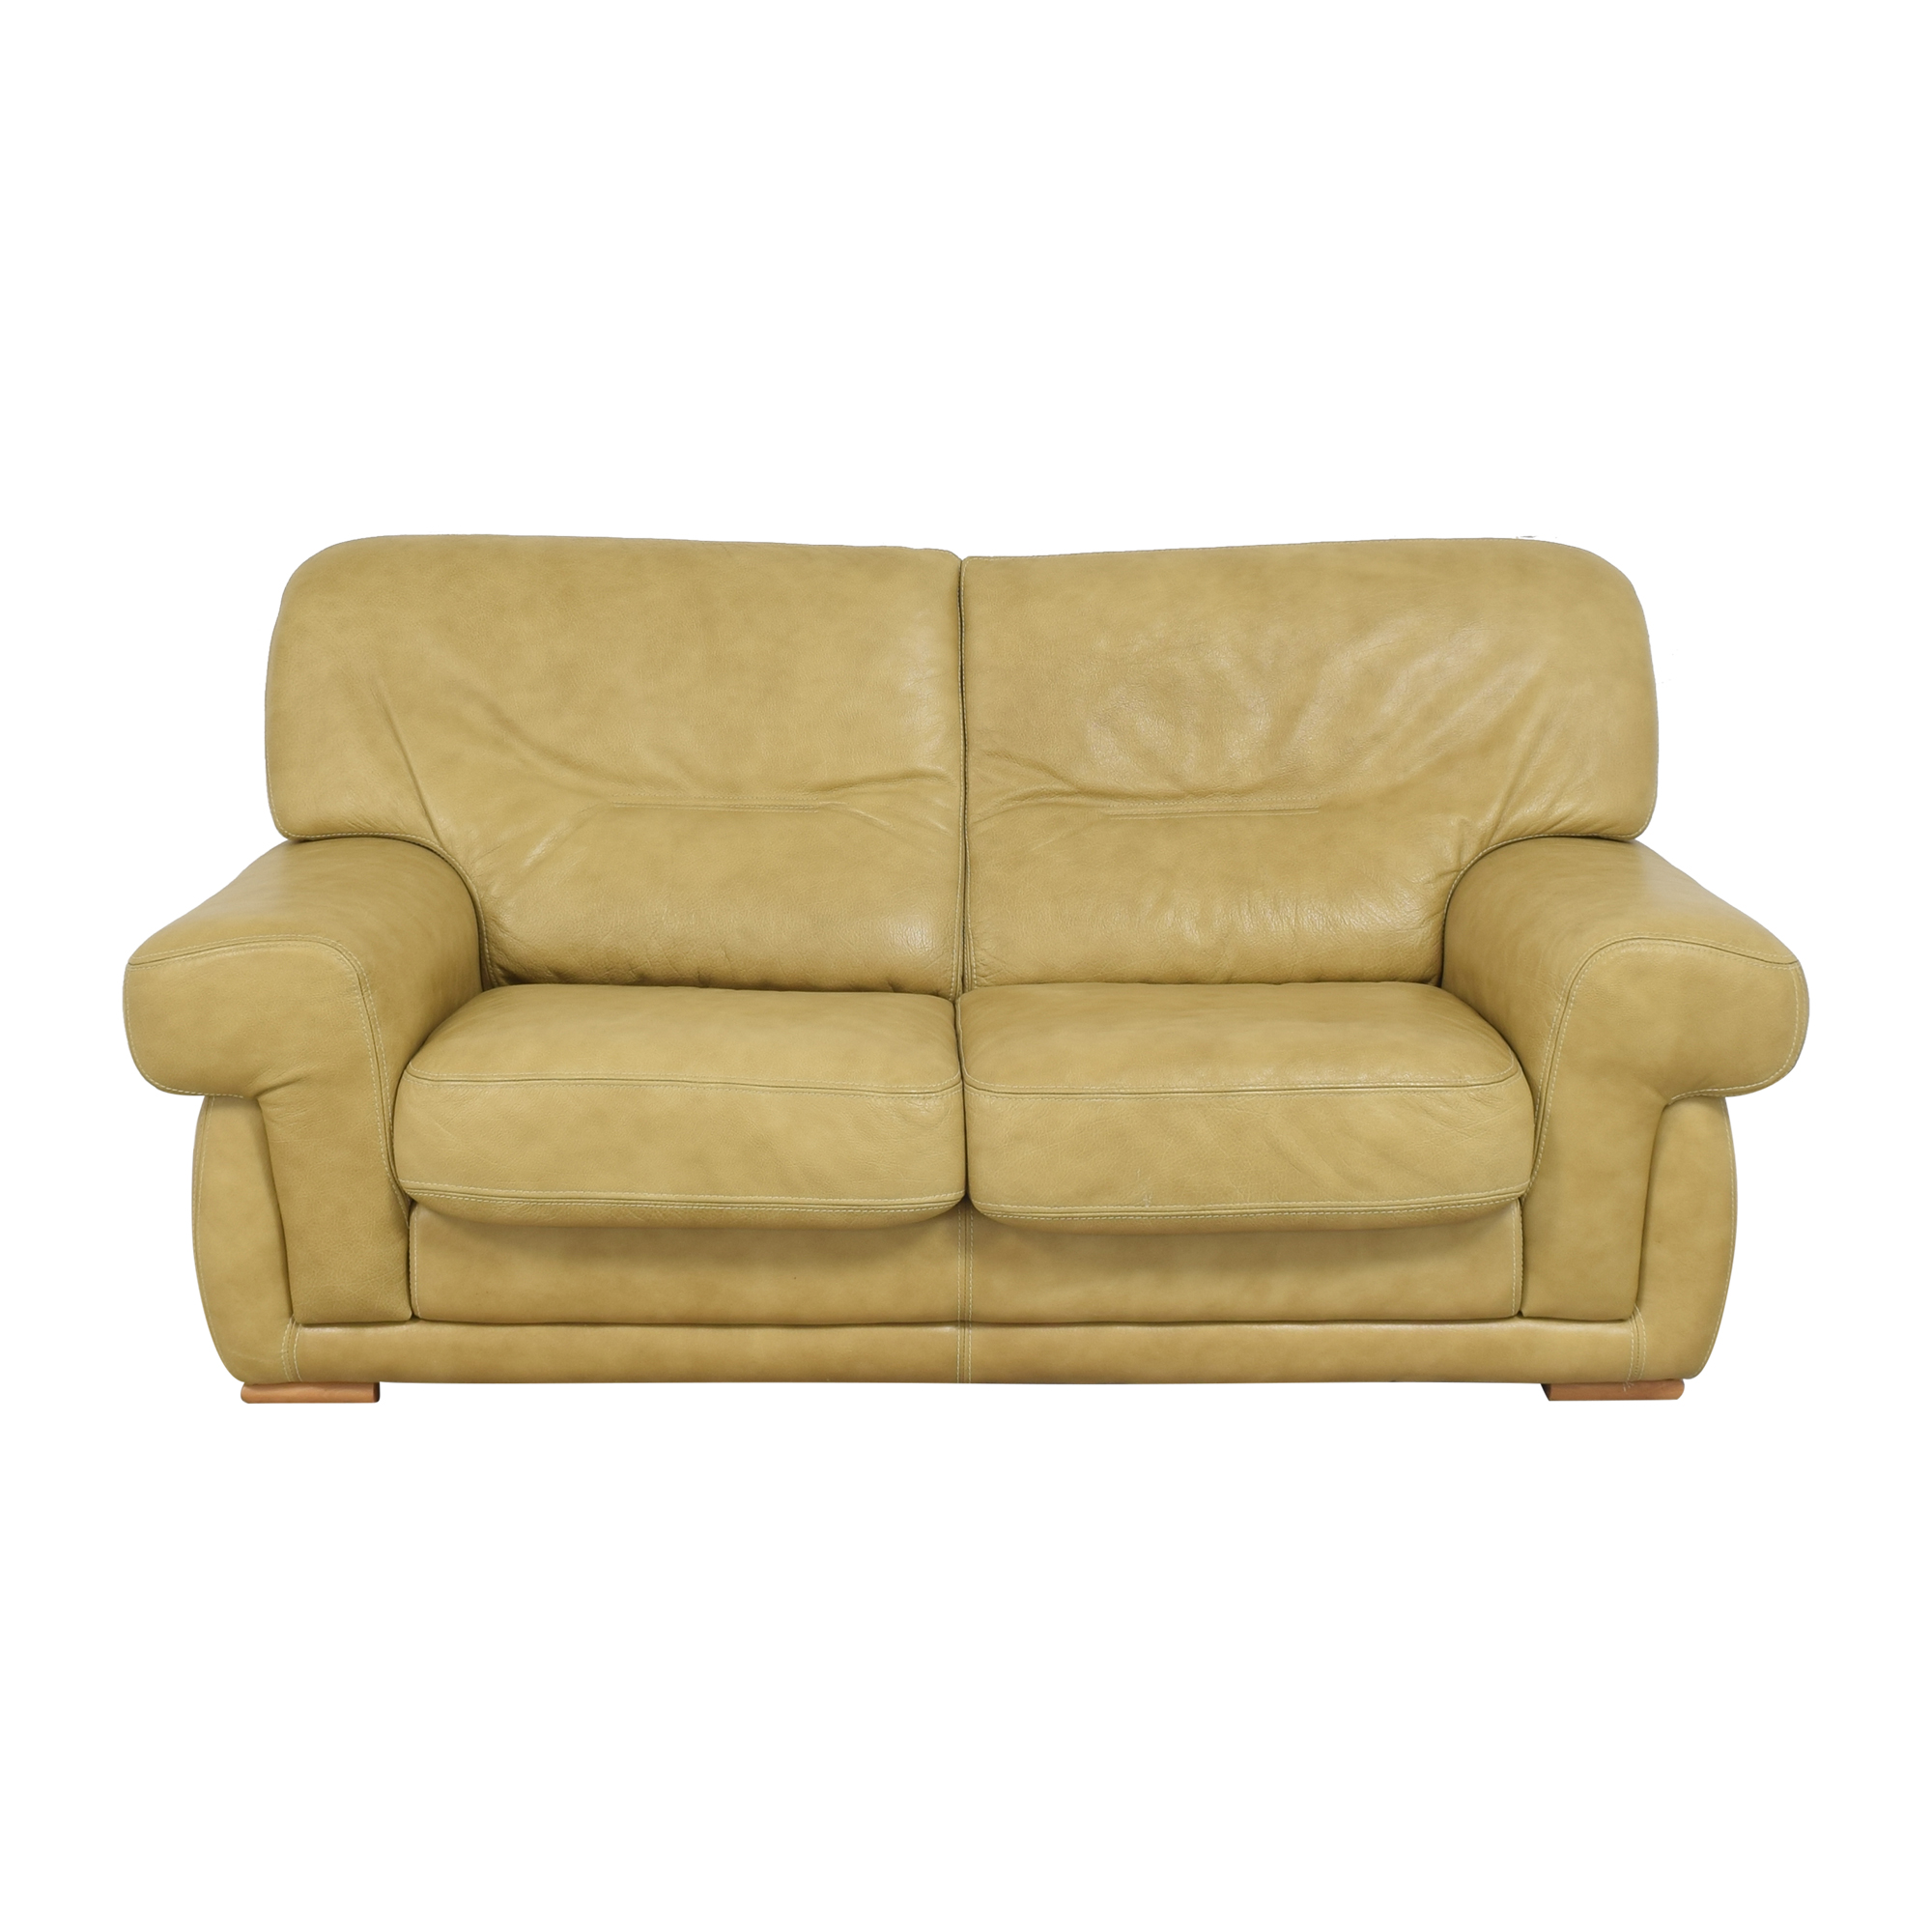 Formitalia Formitalia DIDI Collection Loveseat used